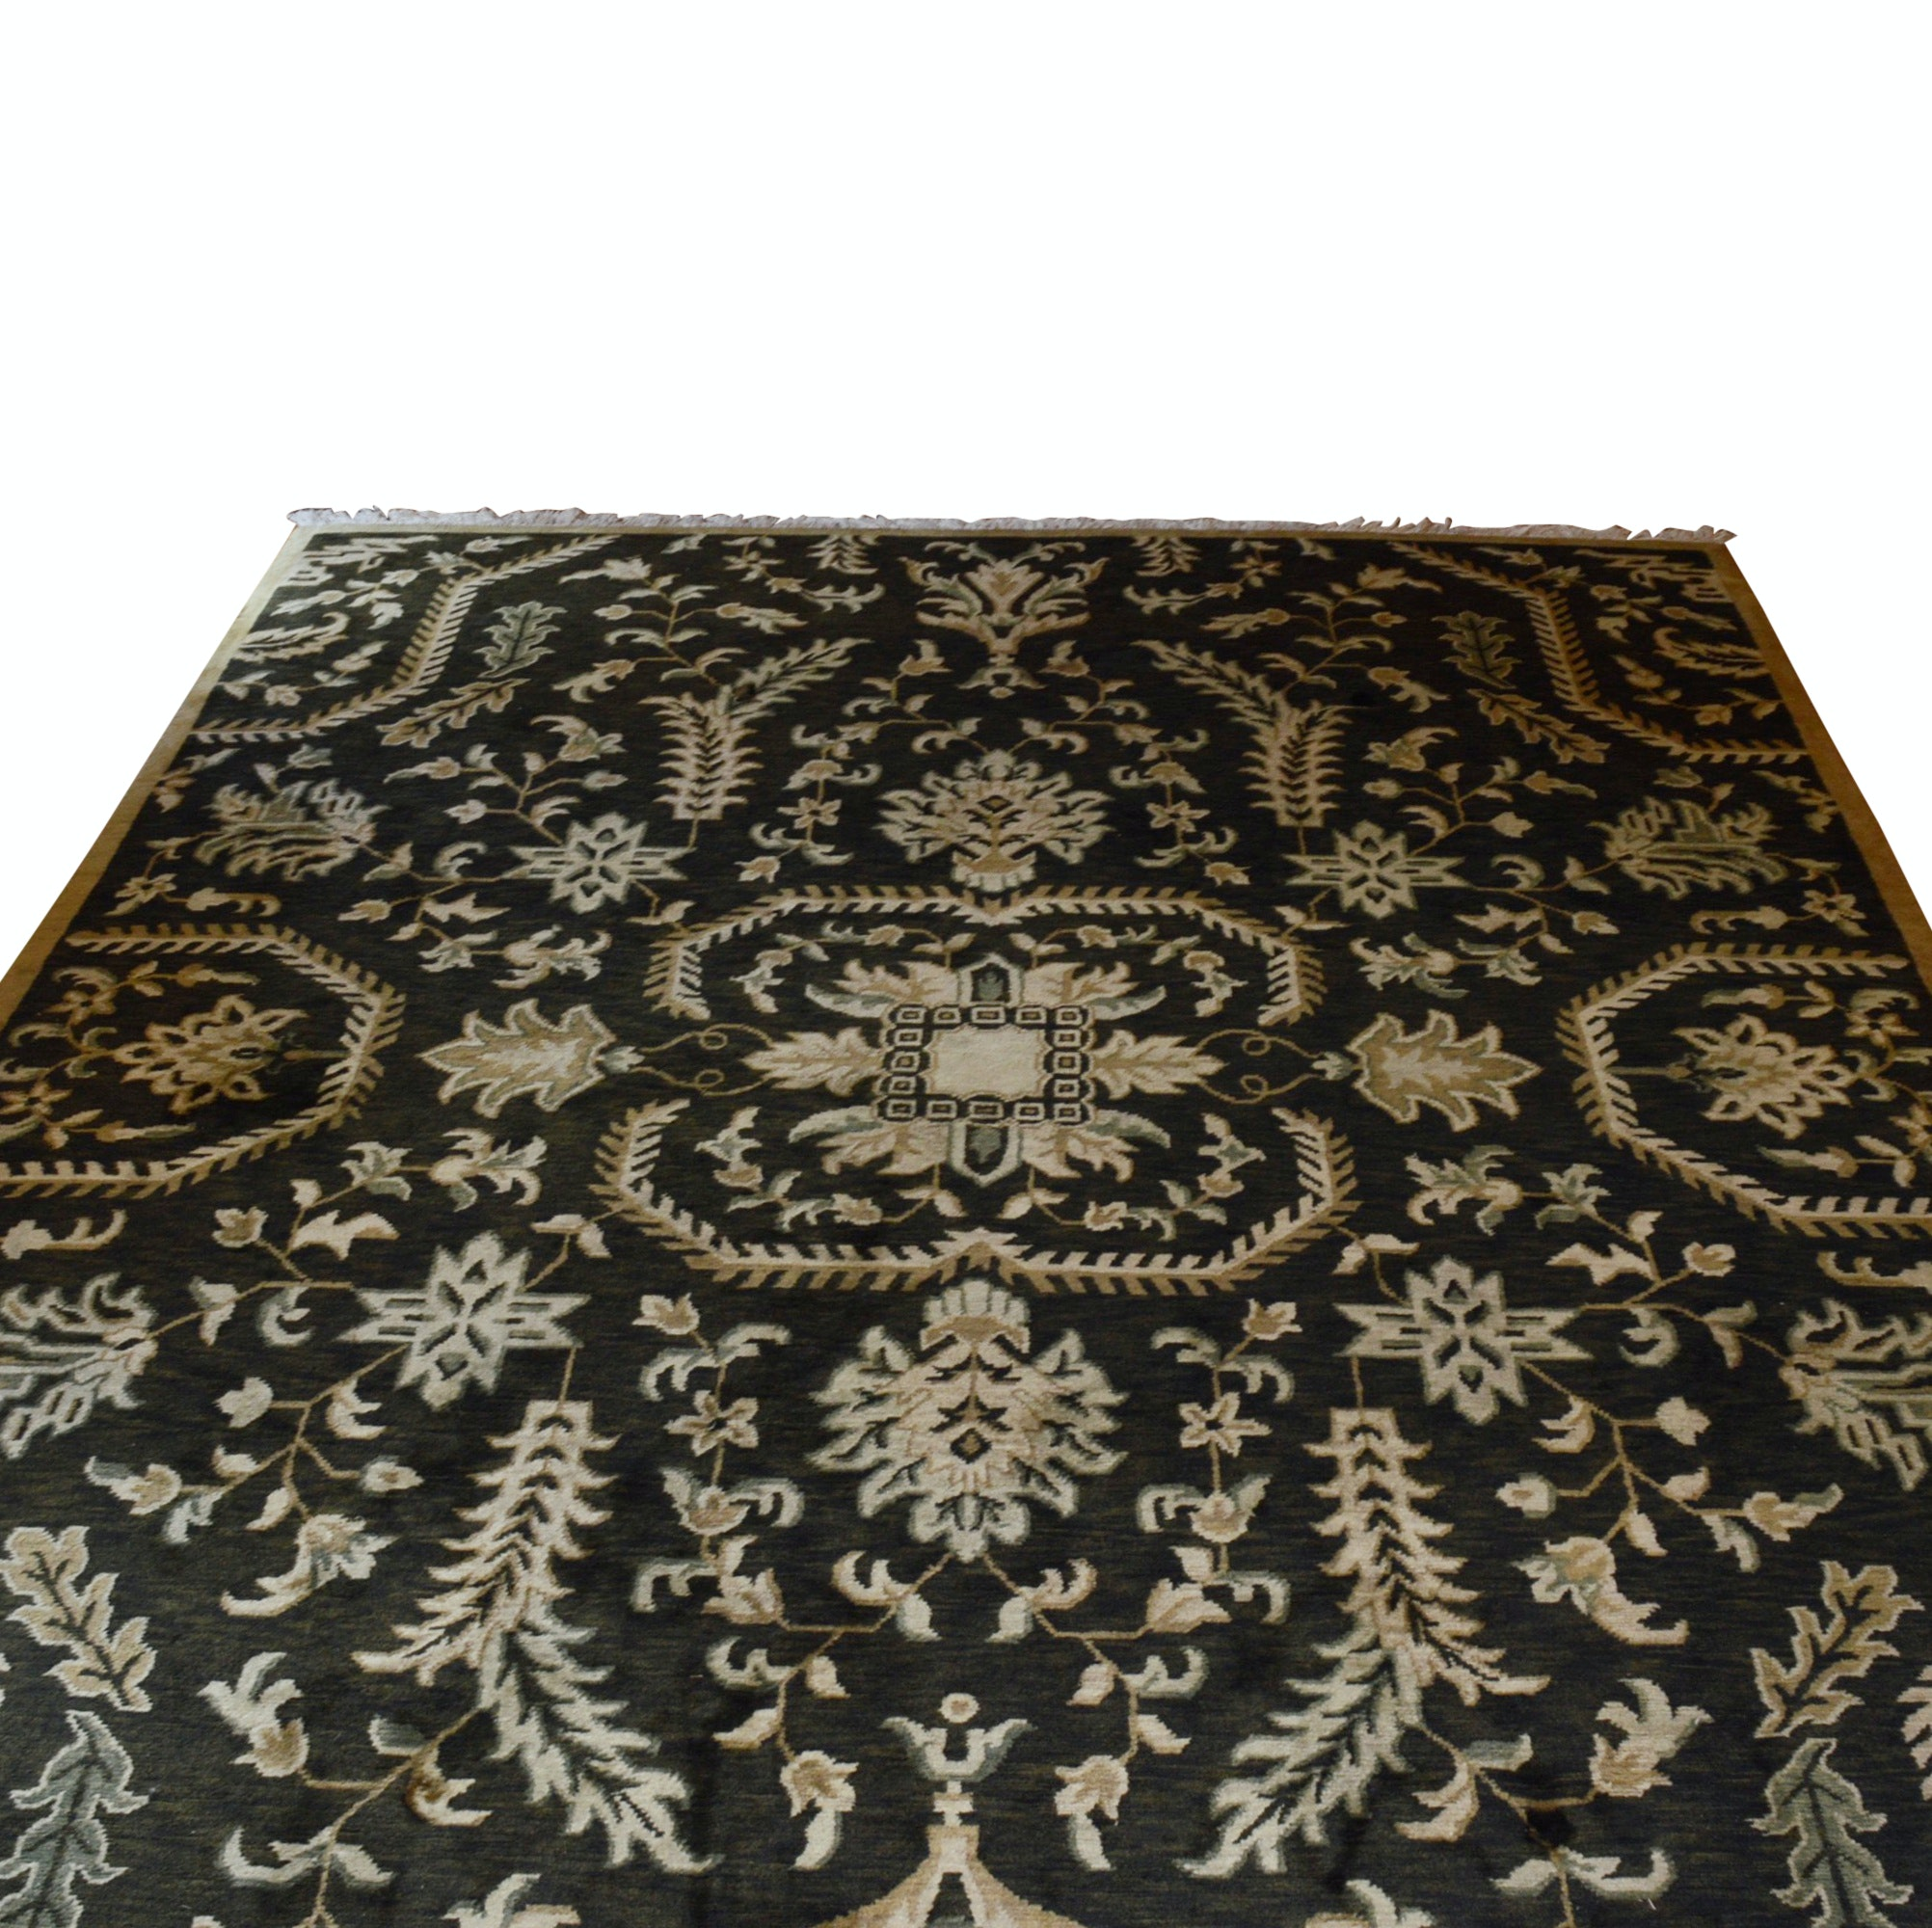 Handwoven Indo-Persian Floral Wool Area Rug